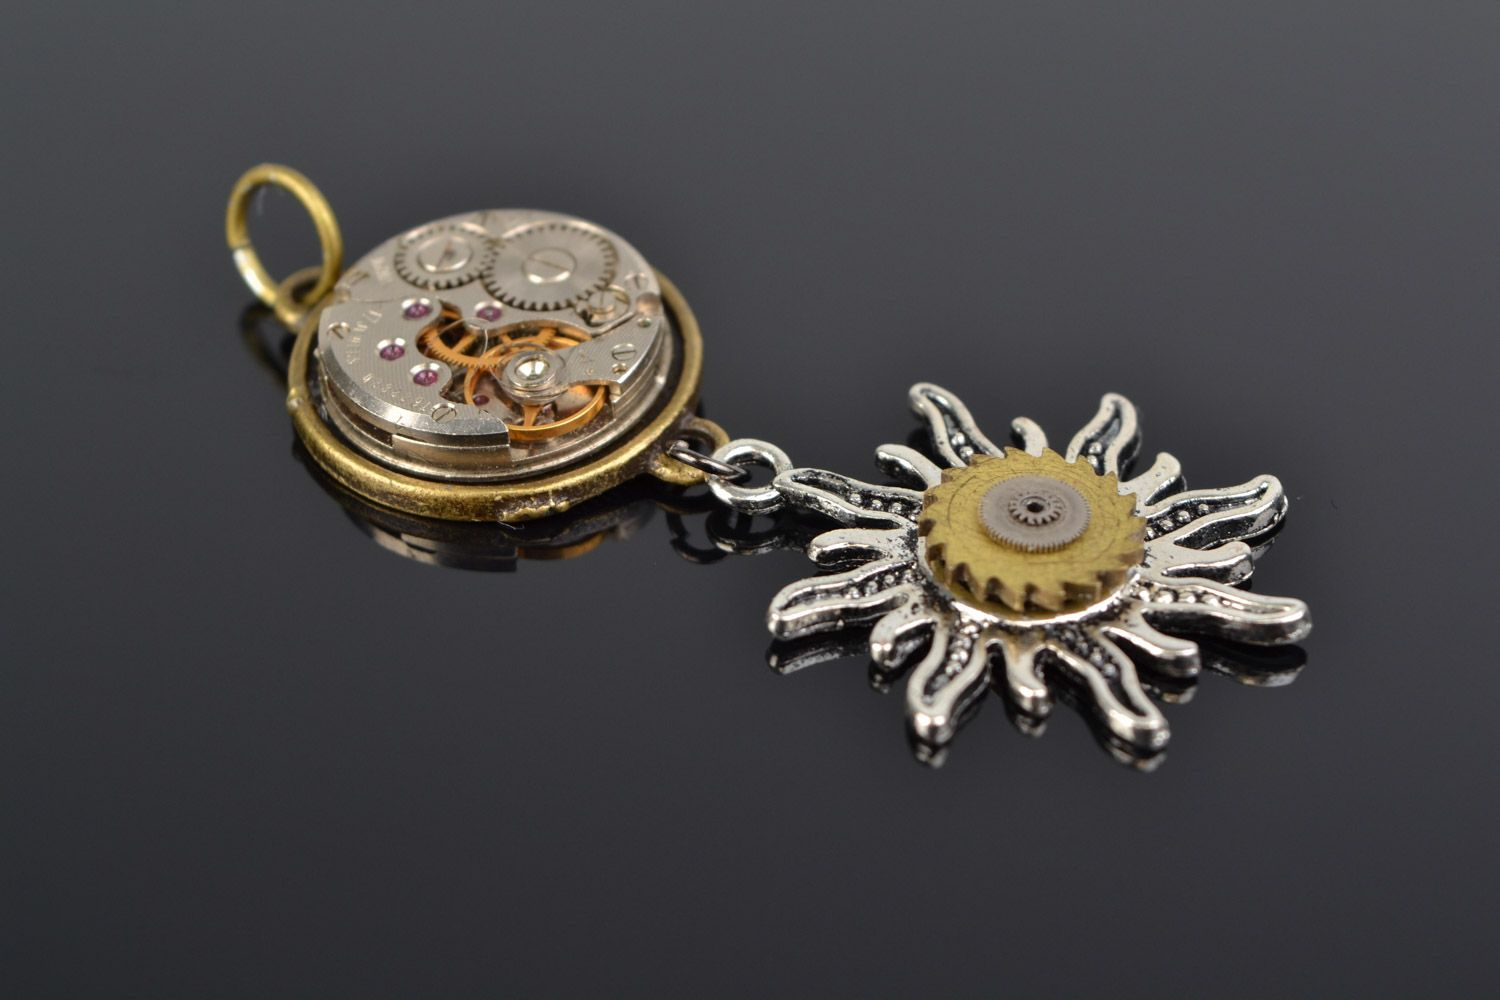 Handmade metal pendant with clock mechanism in steampunk style Sun and Time photo 1